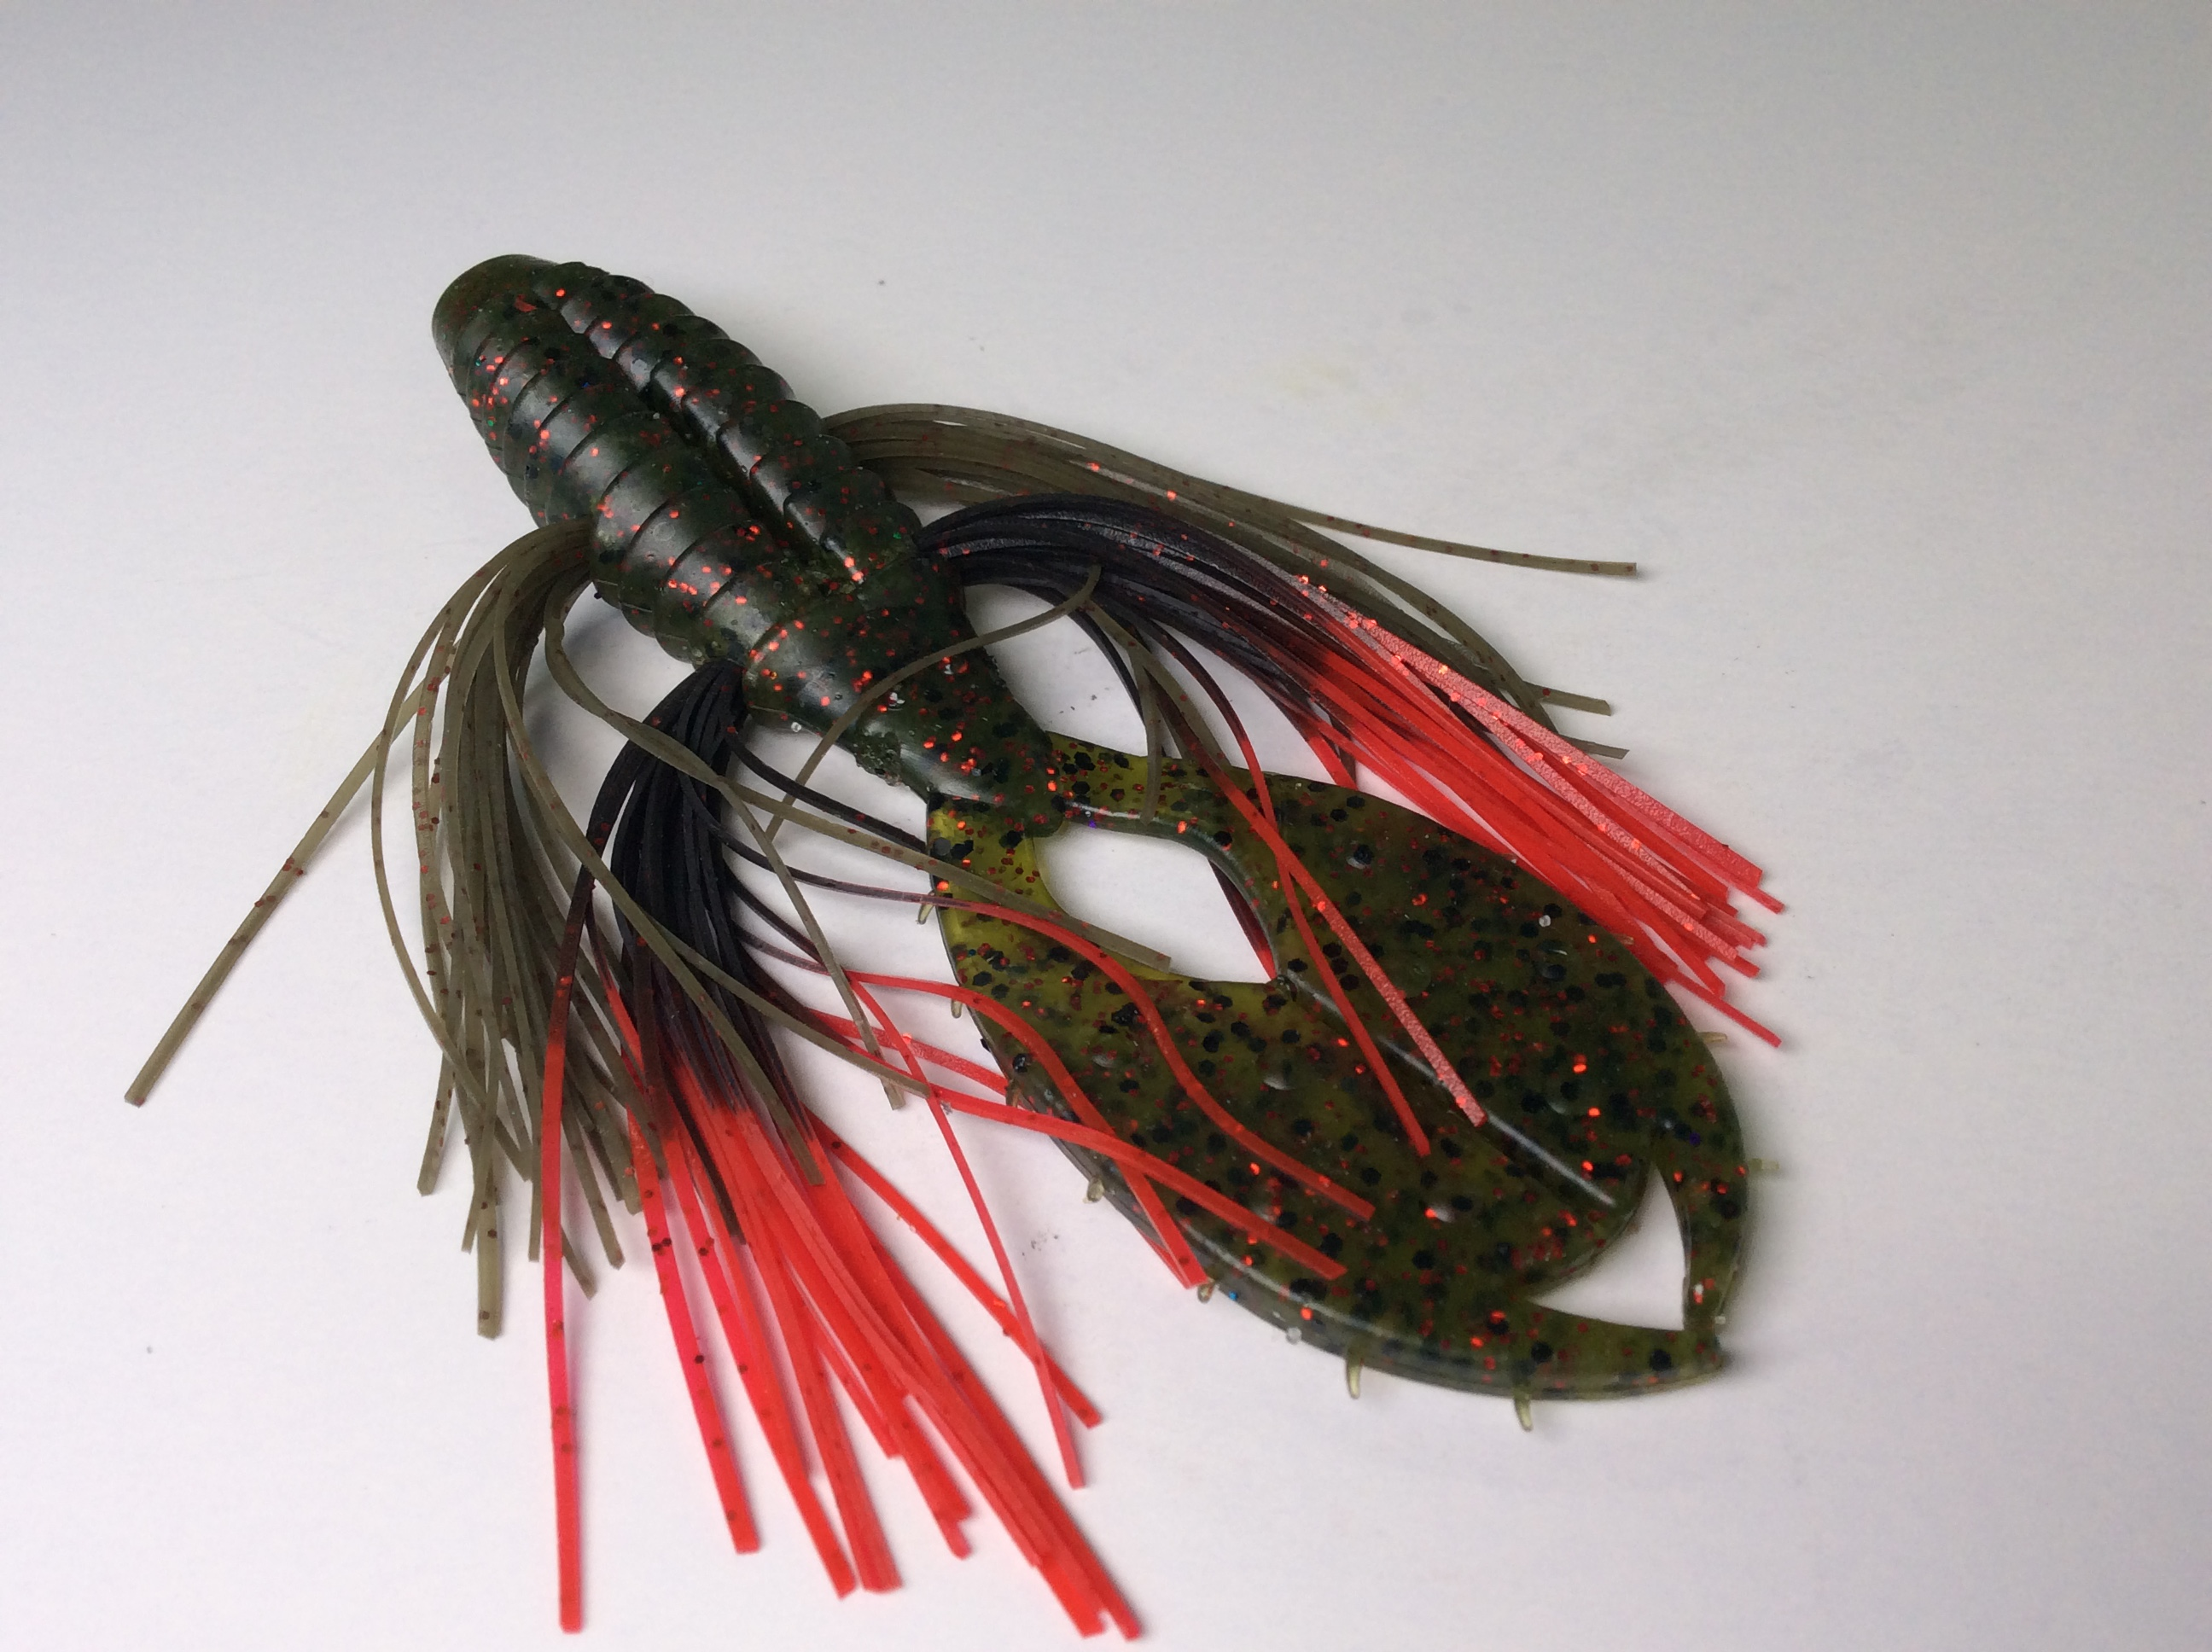 The Punch - Watermelon Red with Black Red Tip